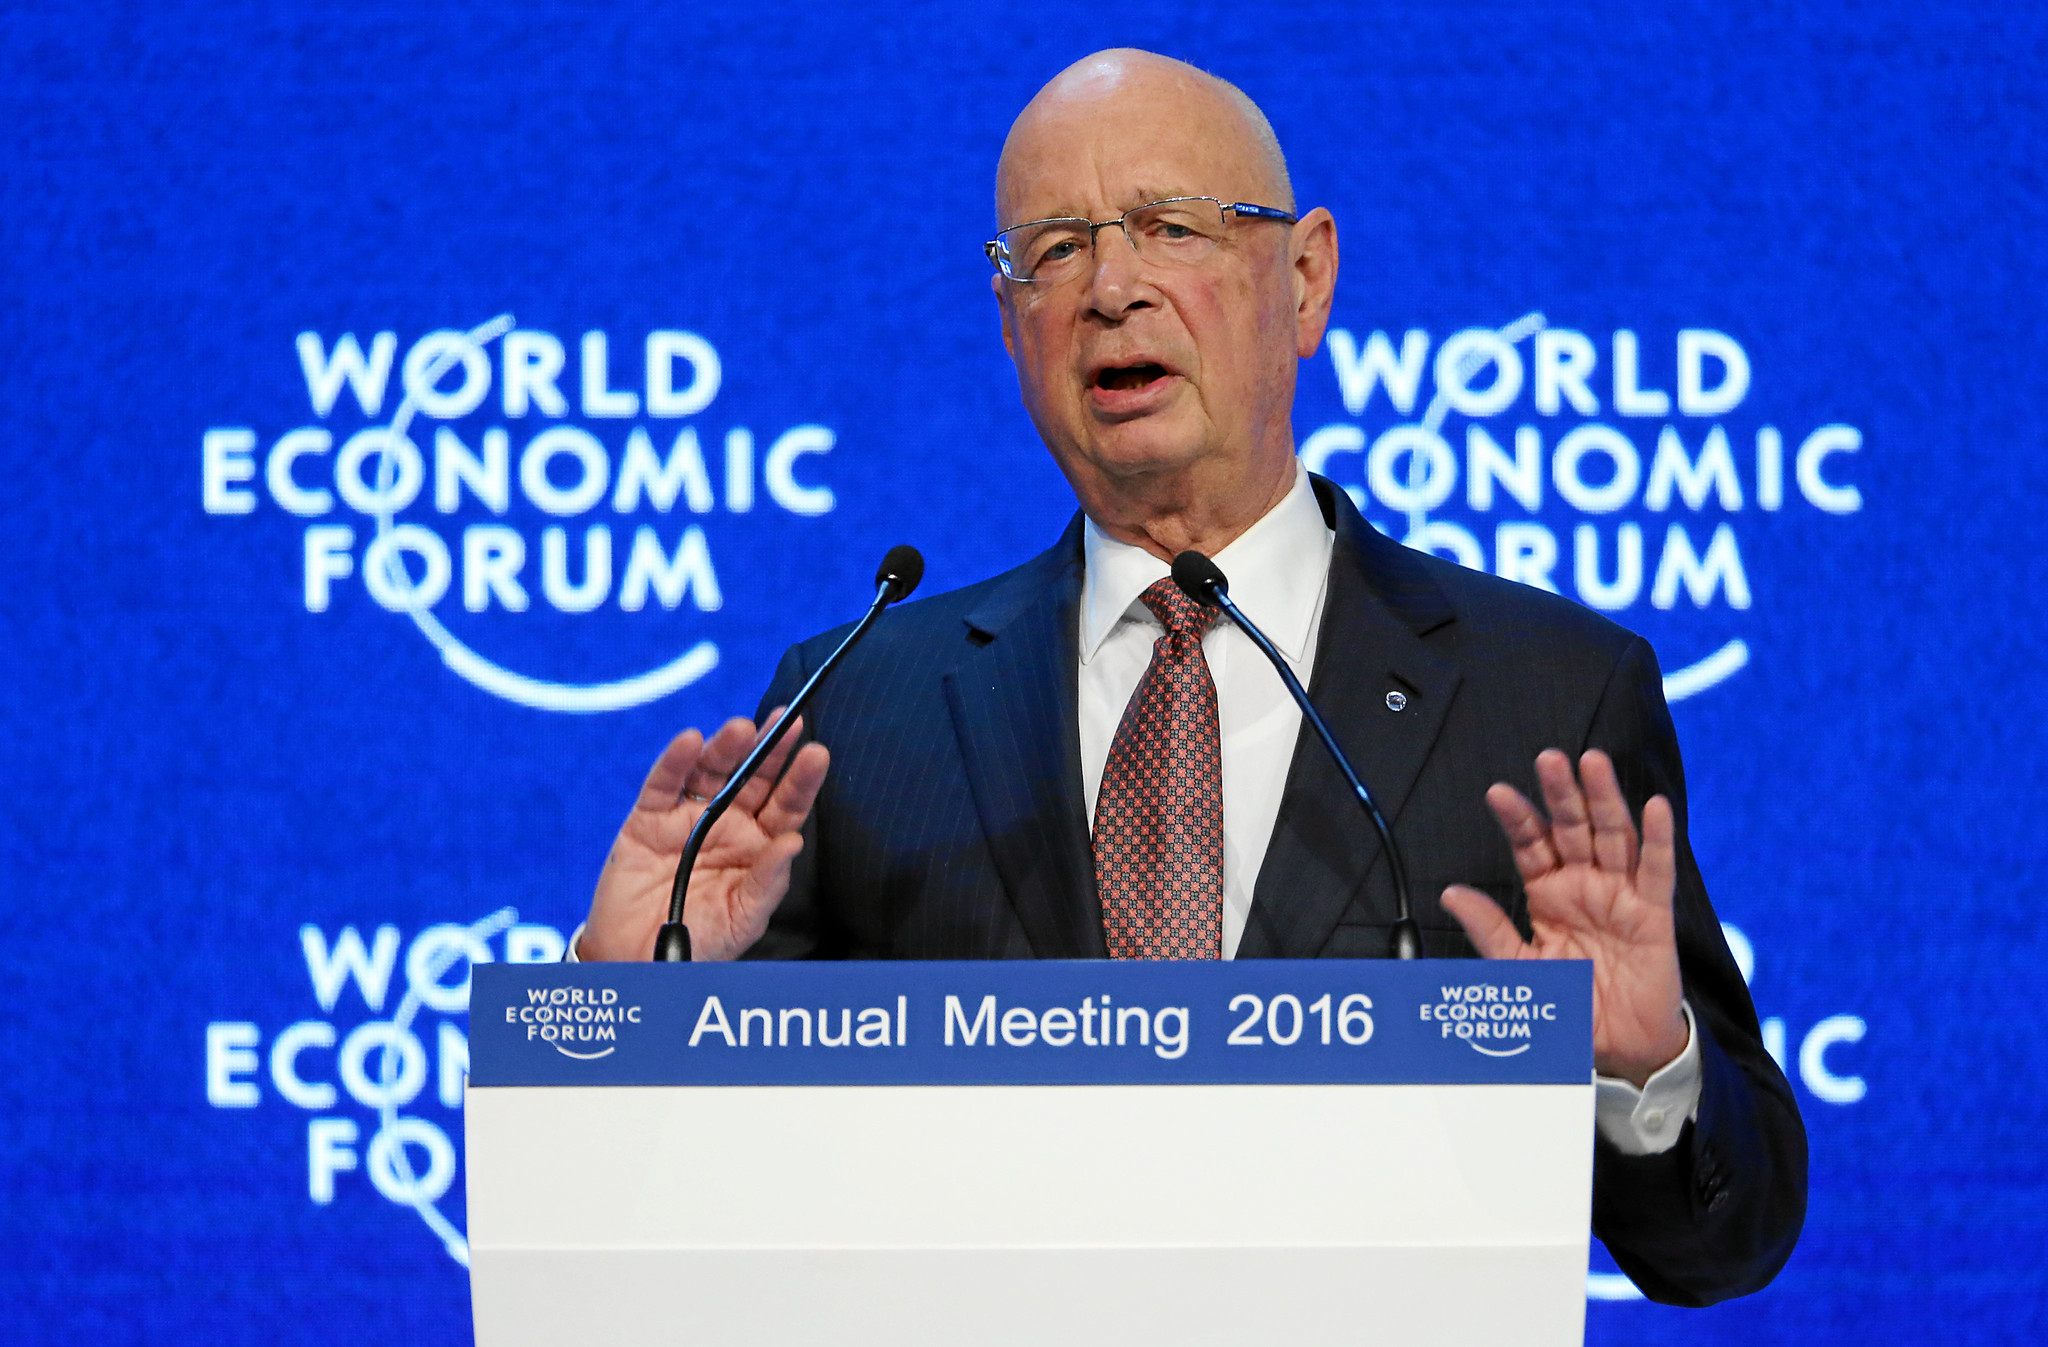 Welcoming Remarks and Special Address: Klaus Schwab